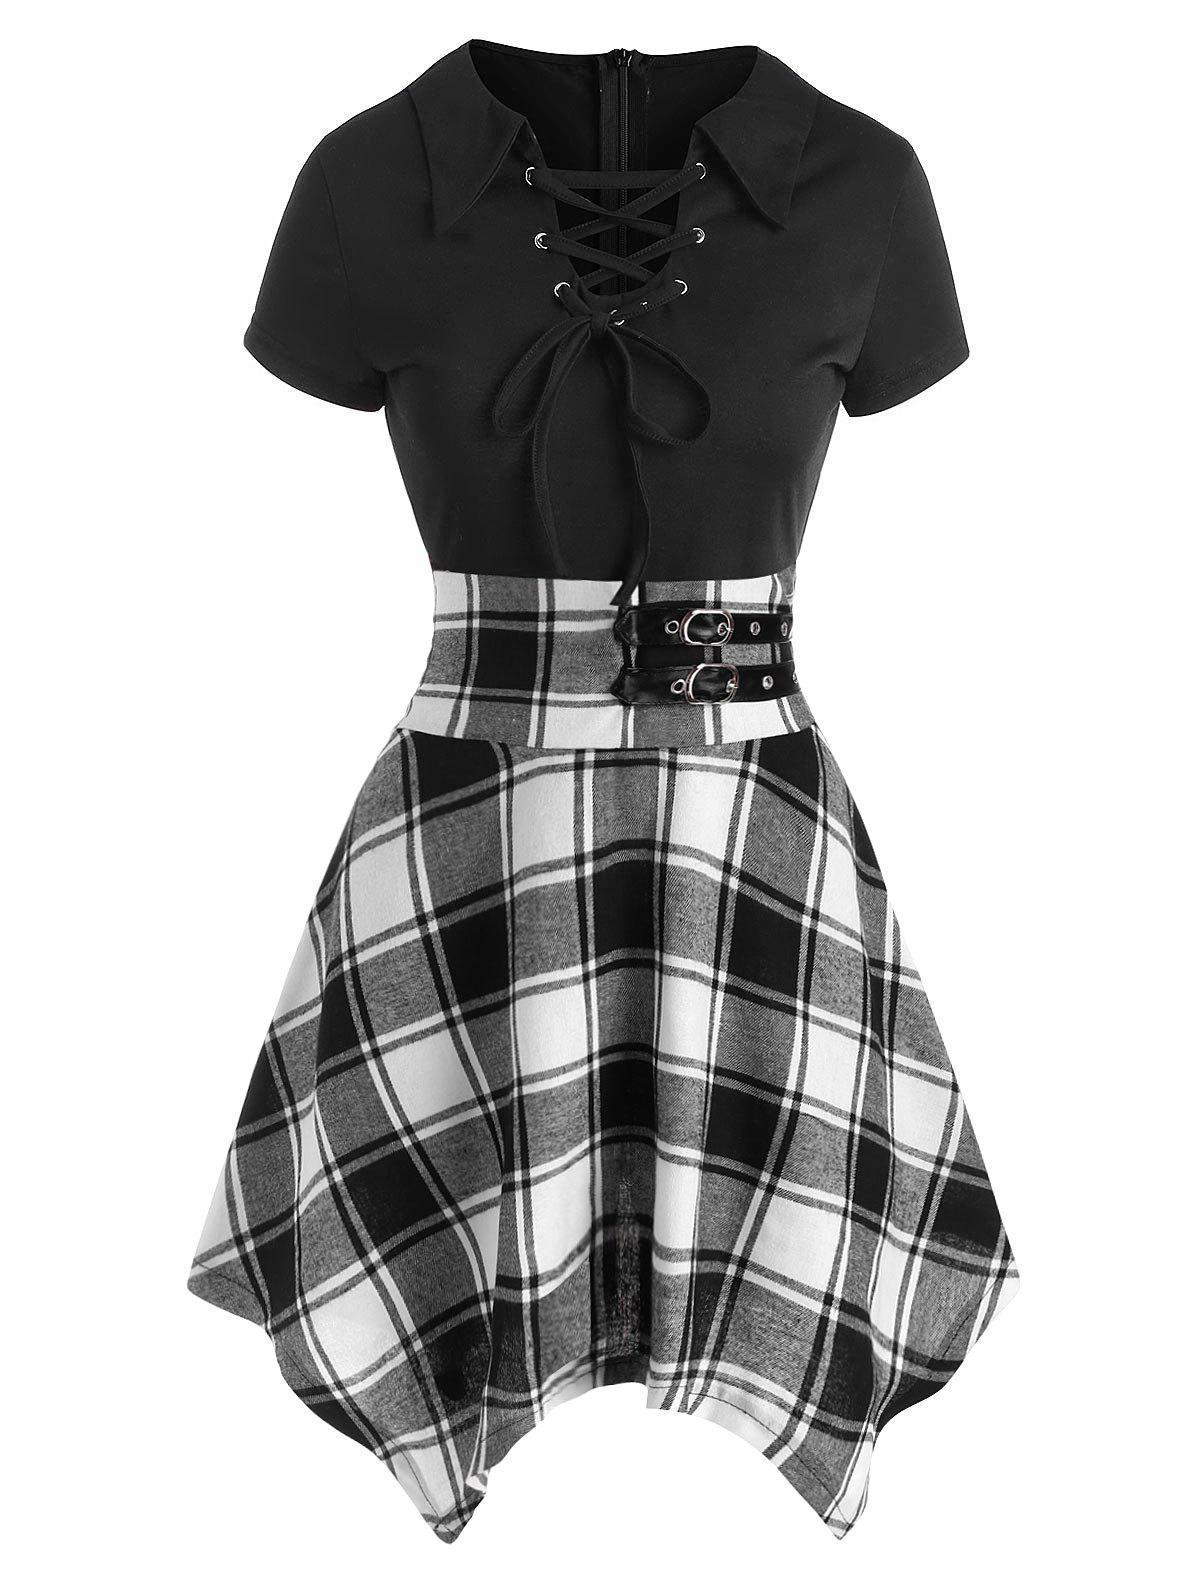 Plaid Lace Up Buckle Embellished Handkerchief Dress - BLACK 2XL